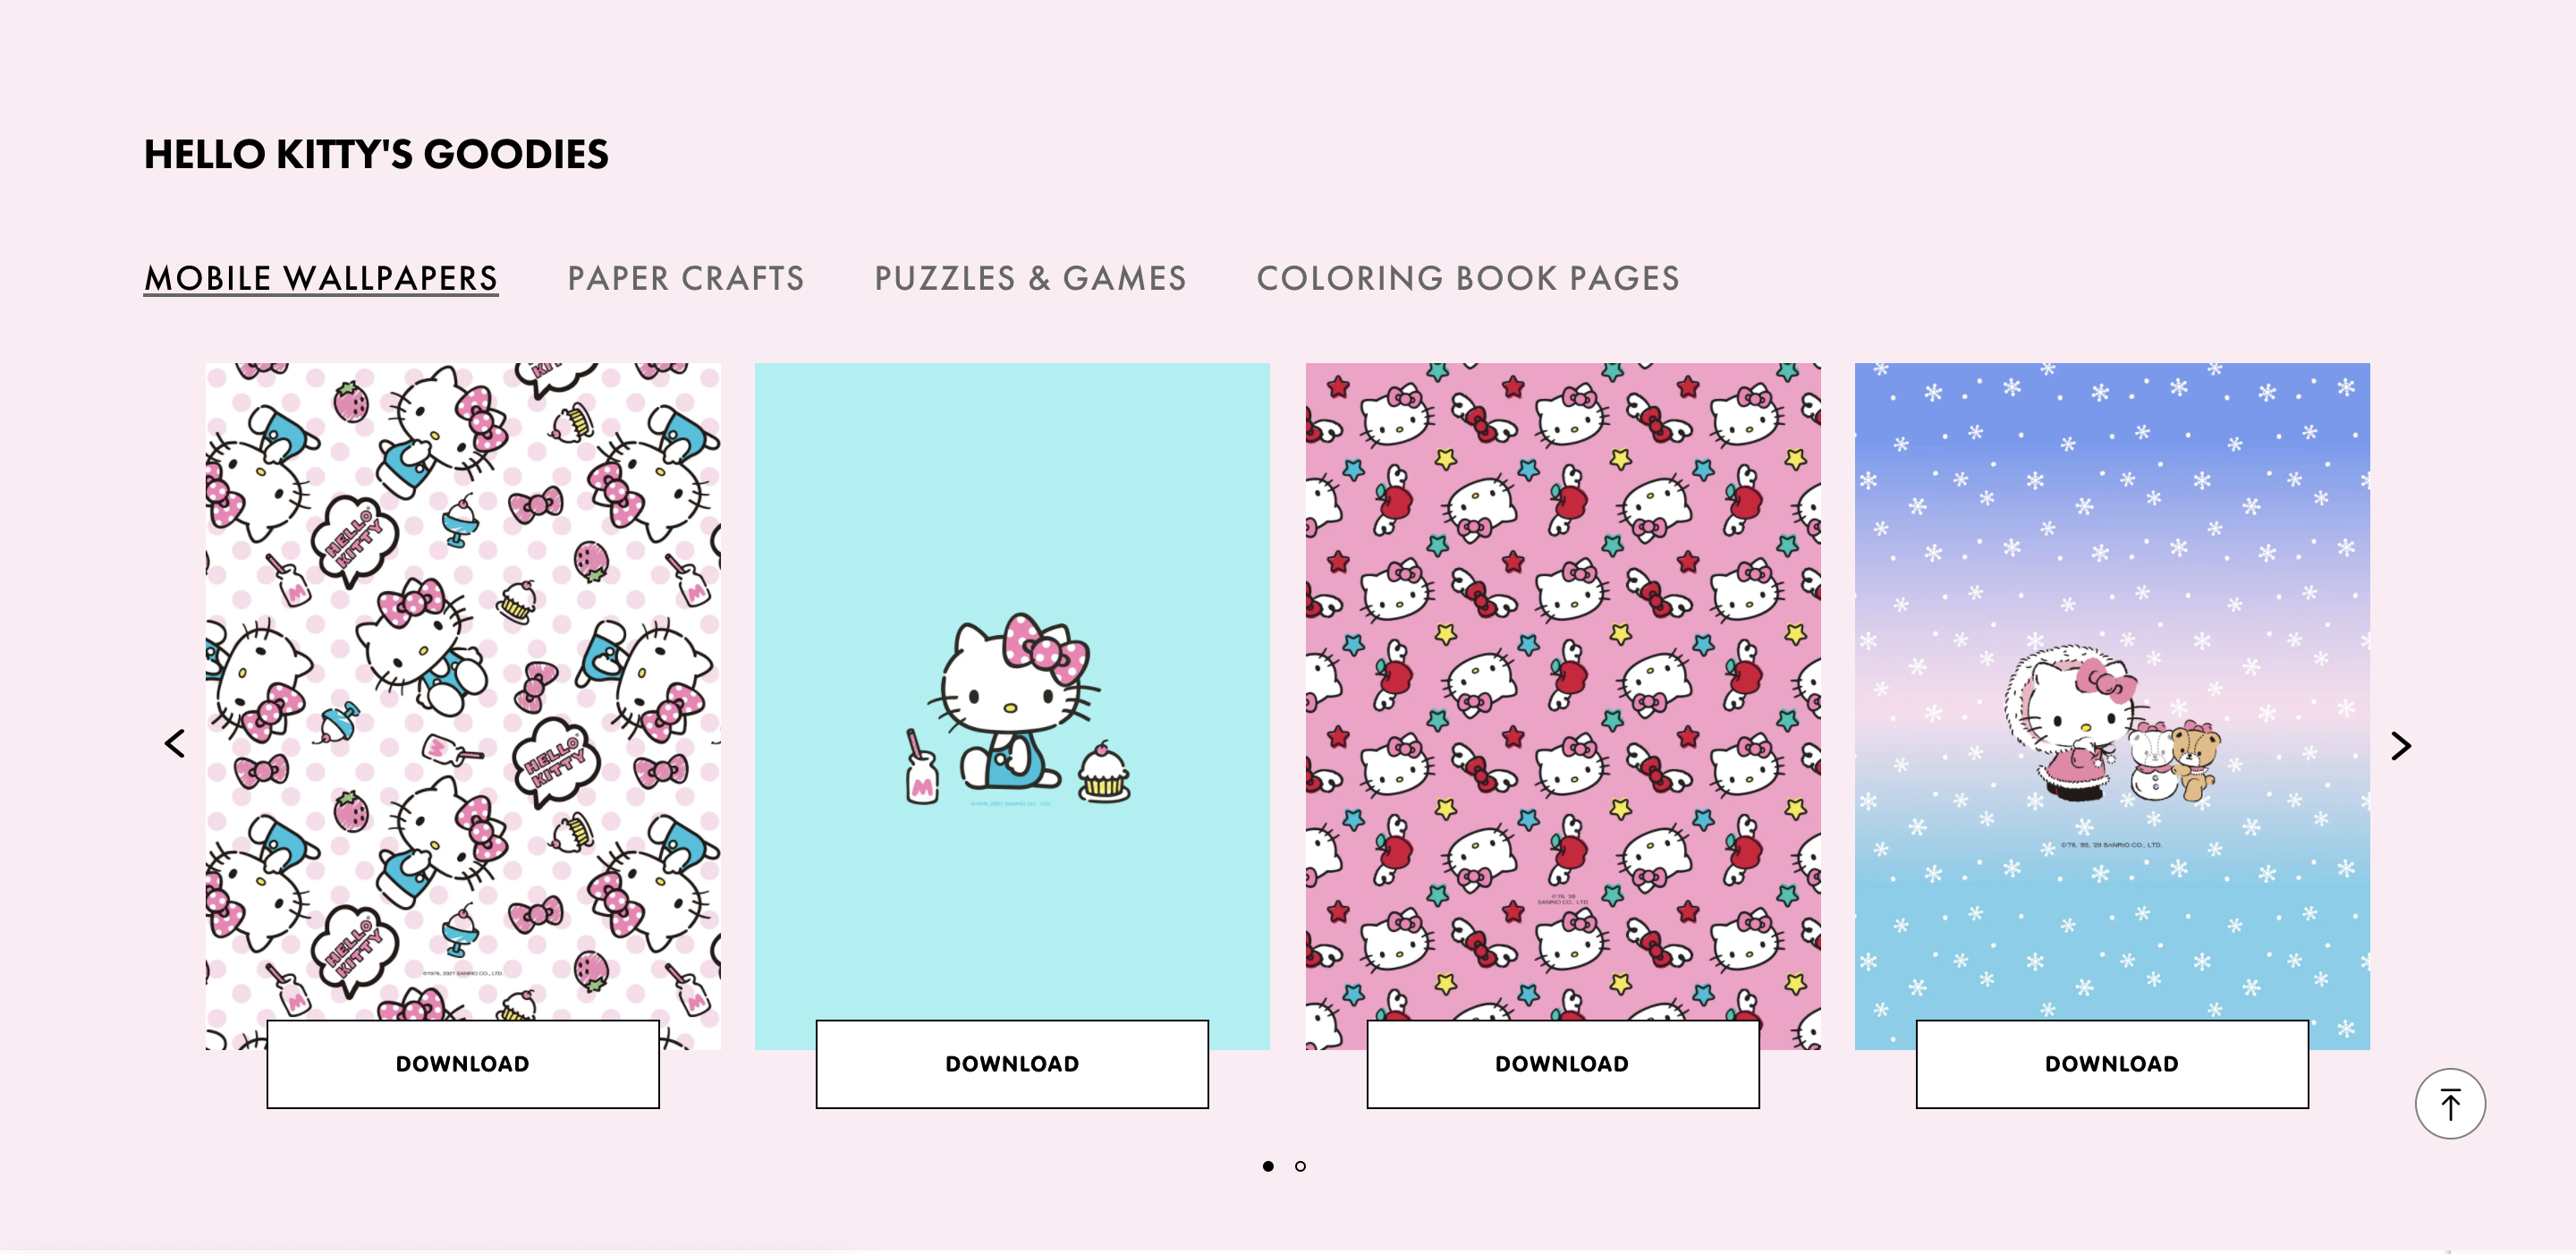 Hello Kitty goodies content block with wallpapers and crafts